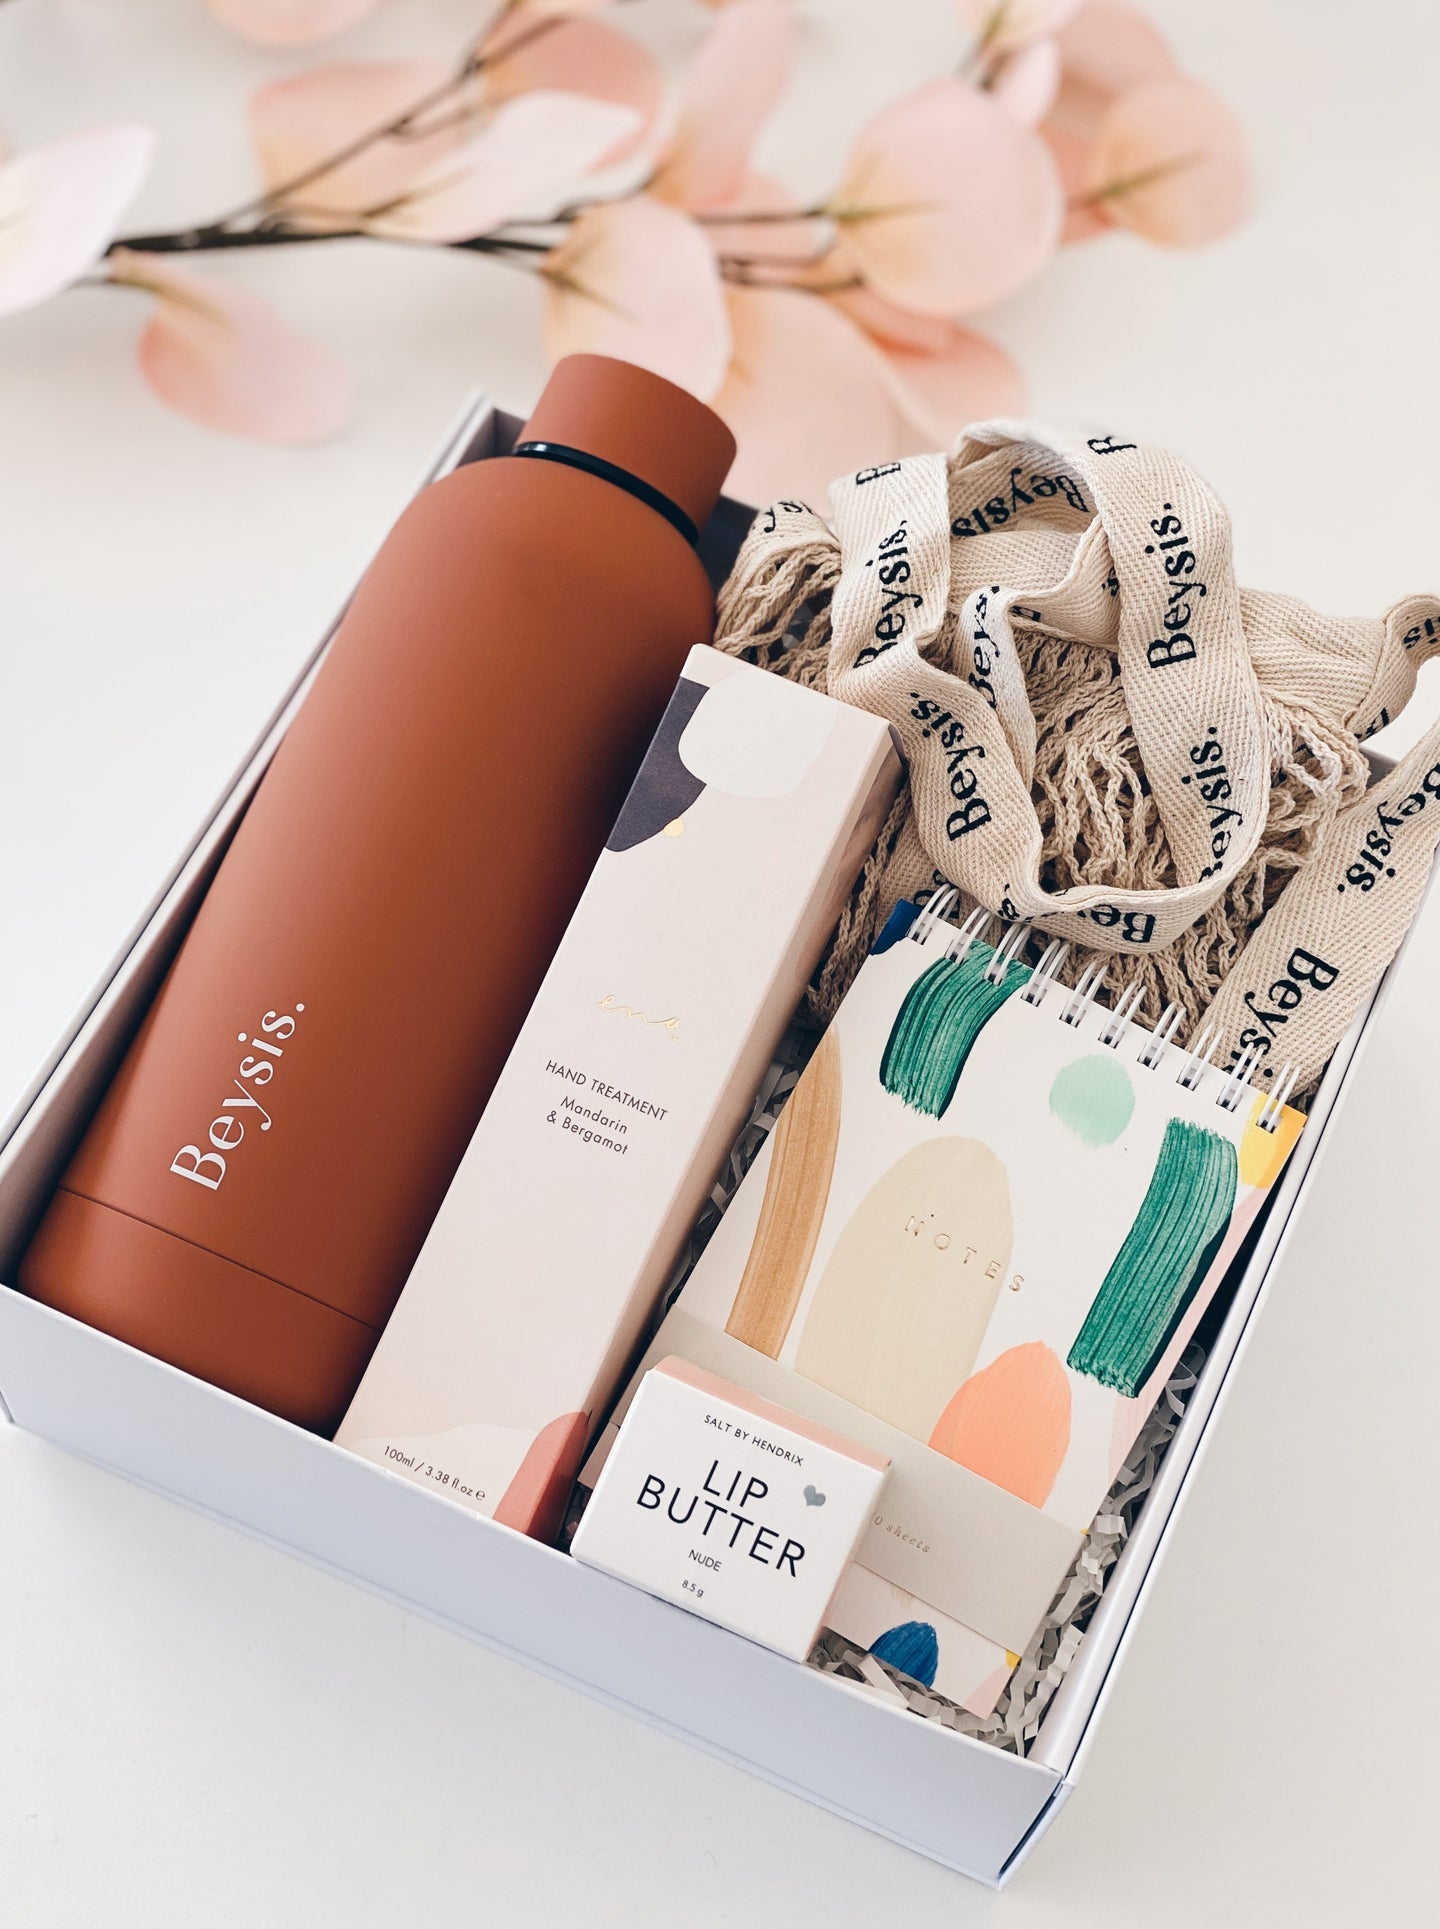 Parcelle - Just Add Water Personalised Gift Box - Beysis Terracotta Water Bottle, Beysis Cotton tote, Moglea Mini Notebook, Salt By Hendrix Lip Butter, Ena All Natural Hand Cream